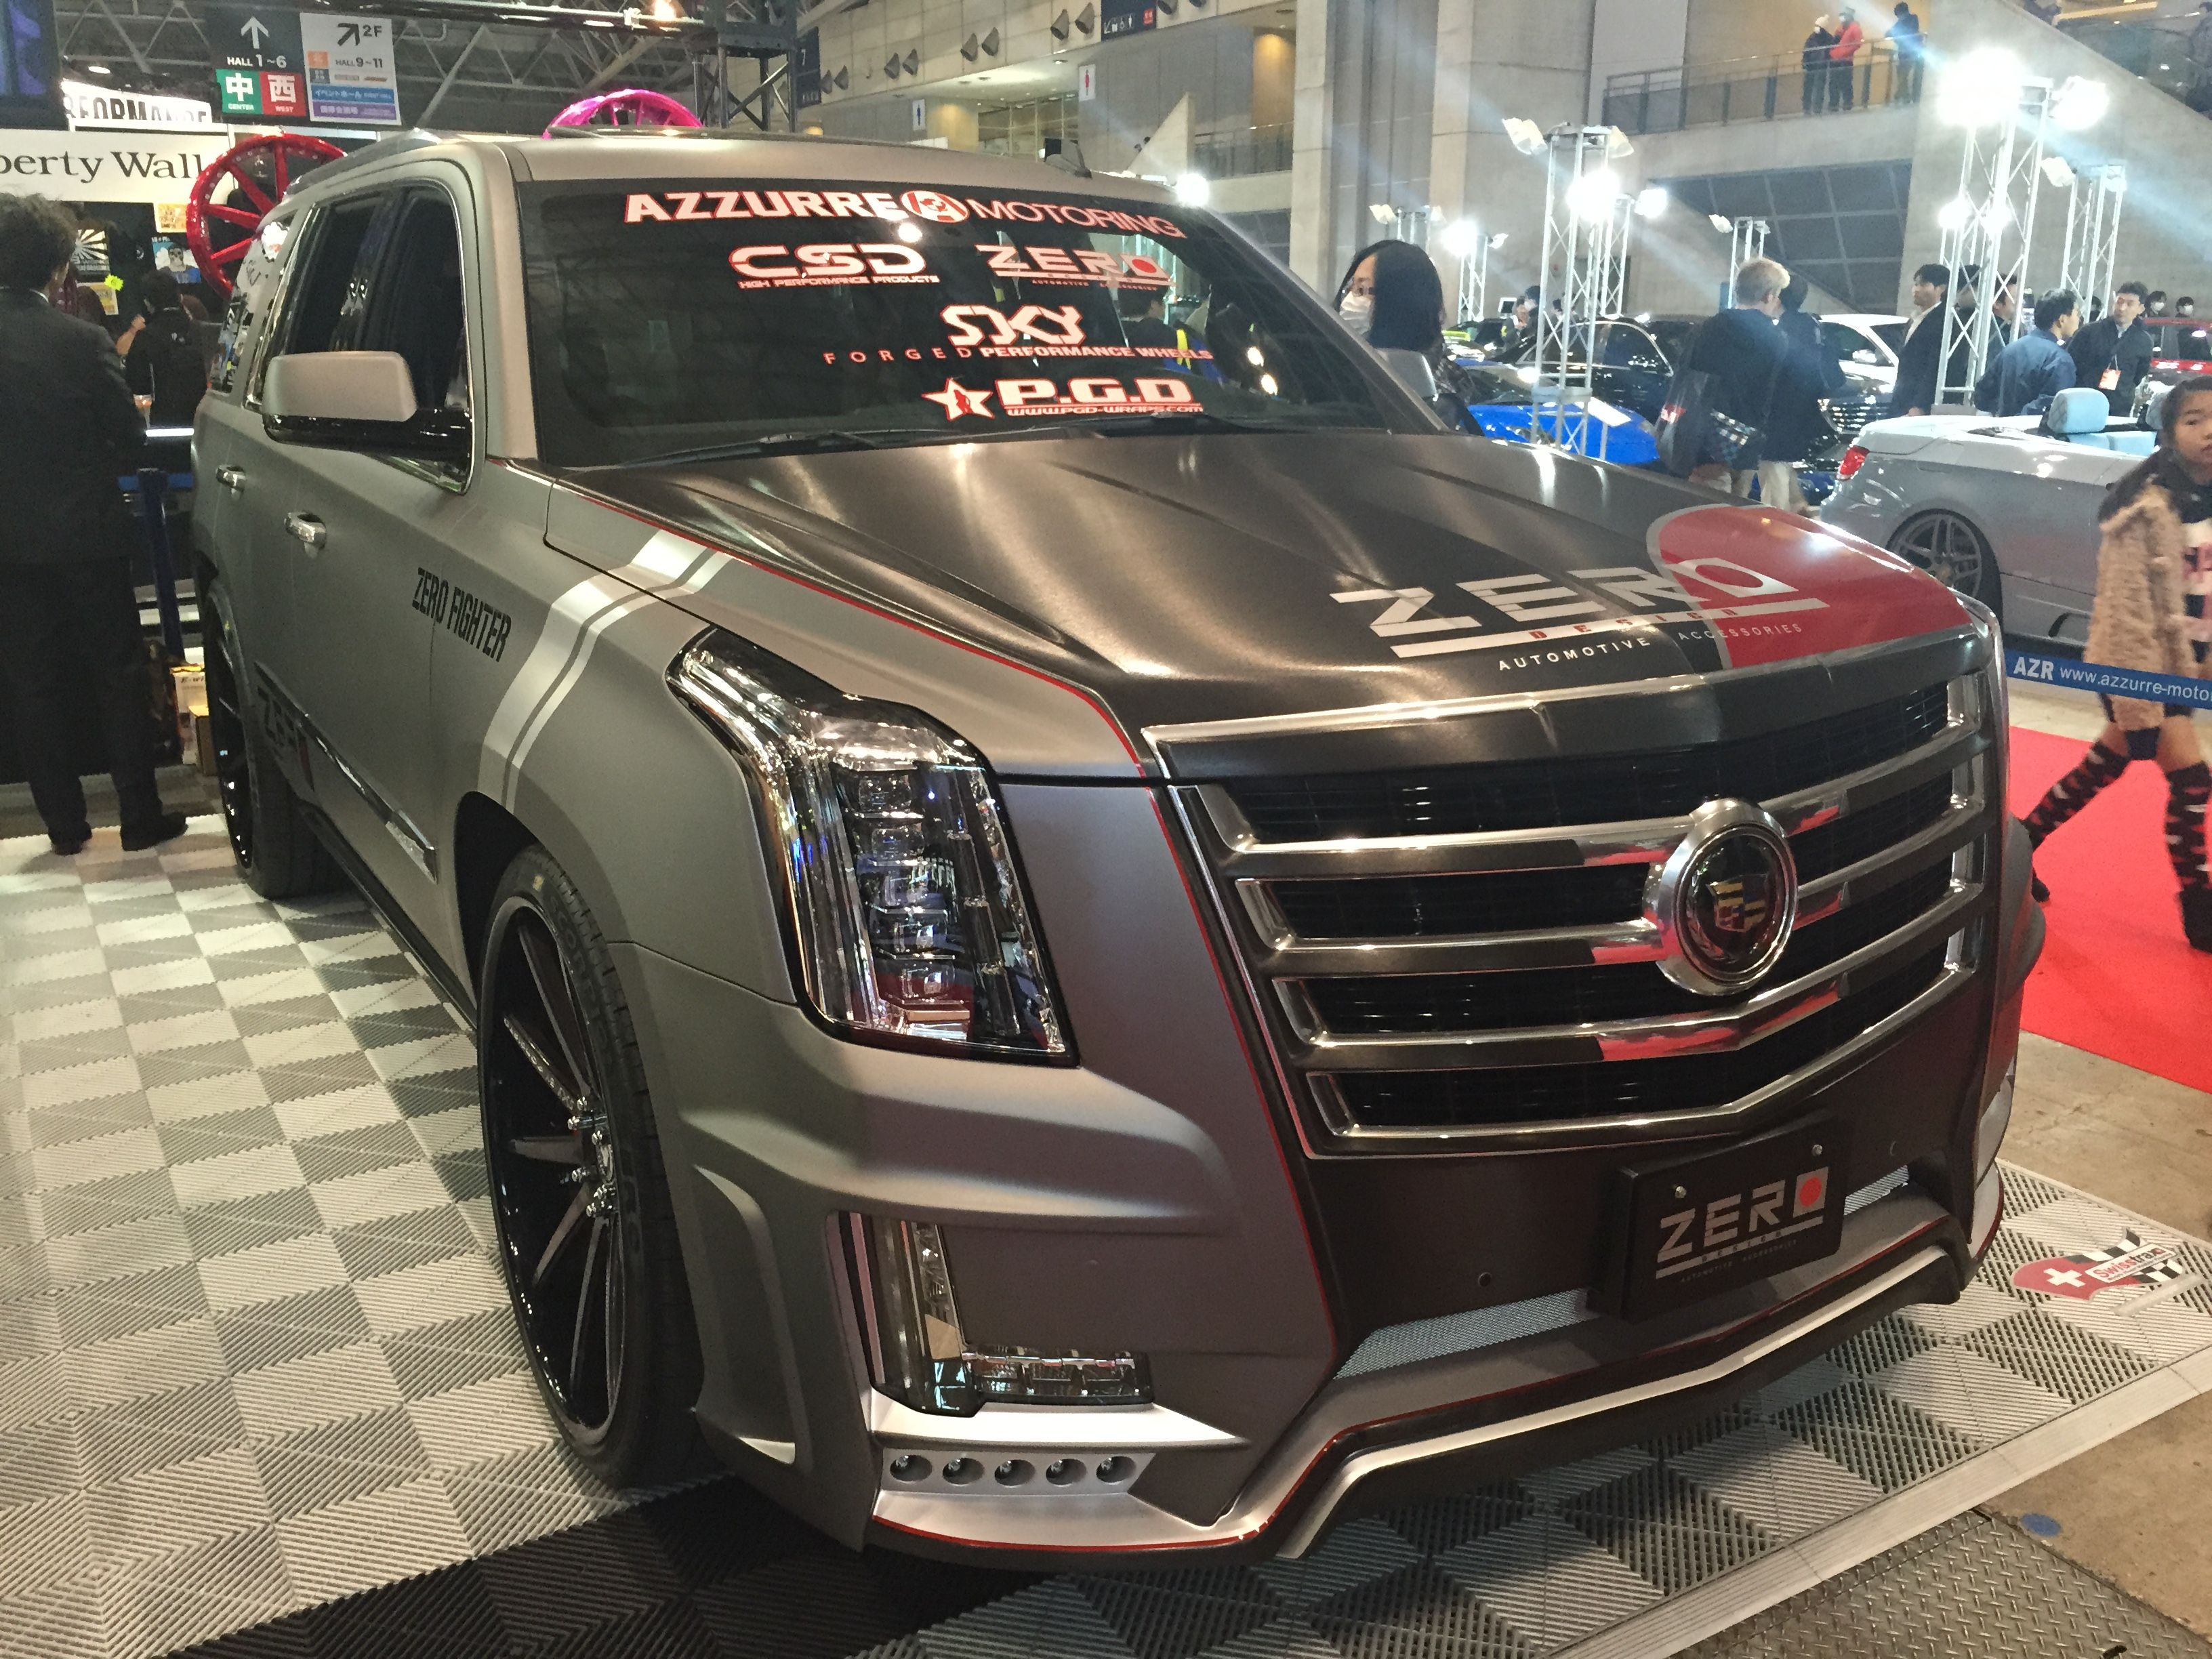 pensacola edition platinum luxury limousine escalade ride fleet from in bay city two up containing img panama this cadillac esv passengers to